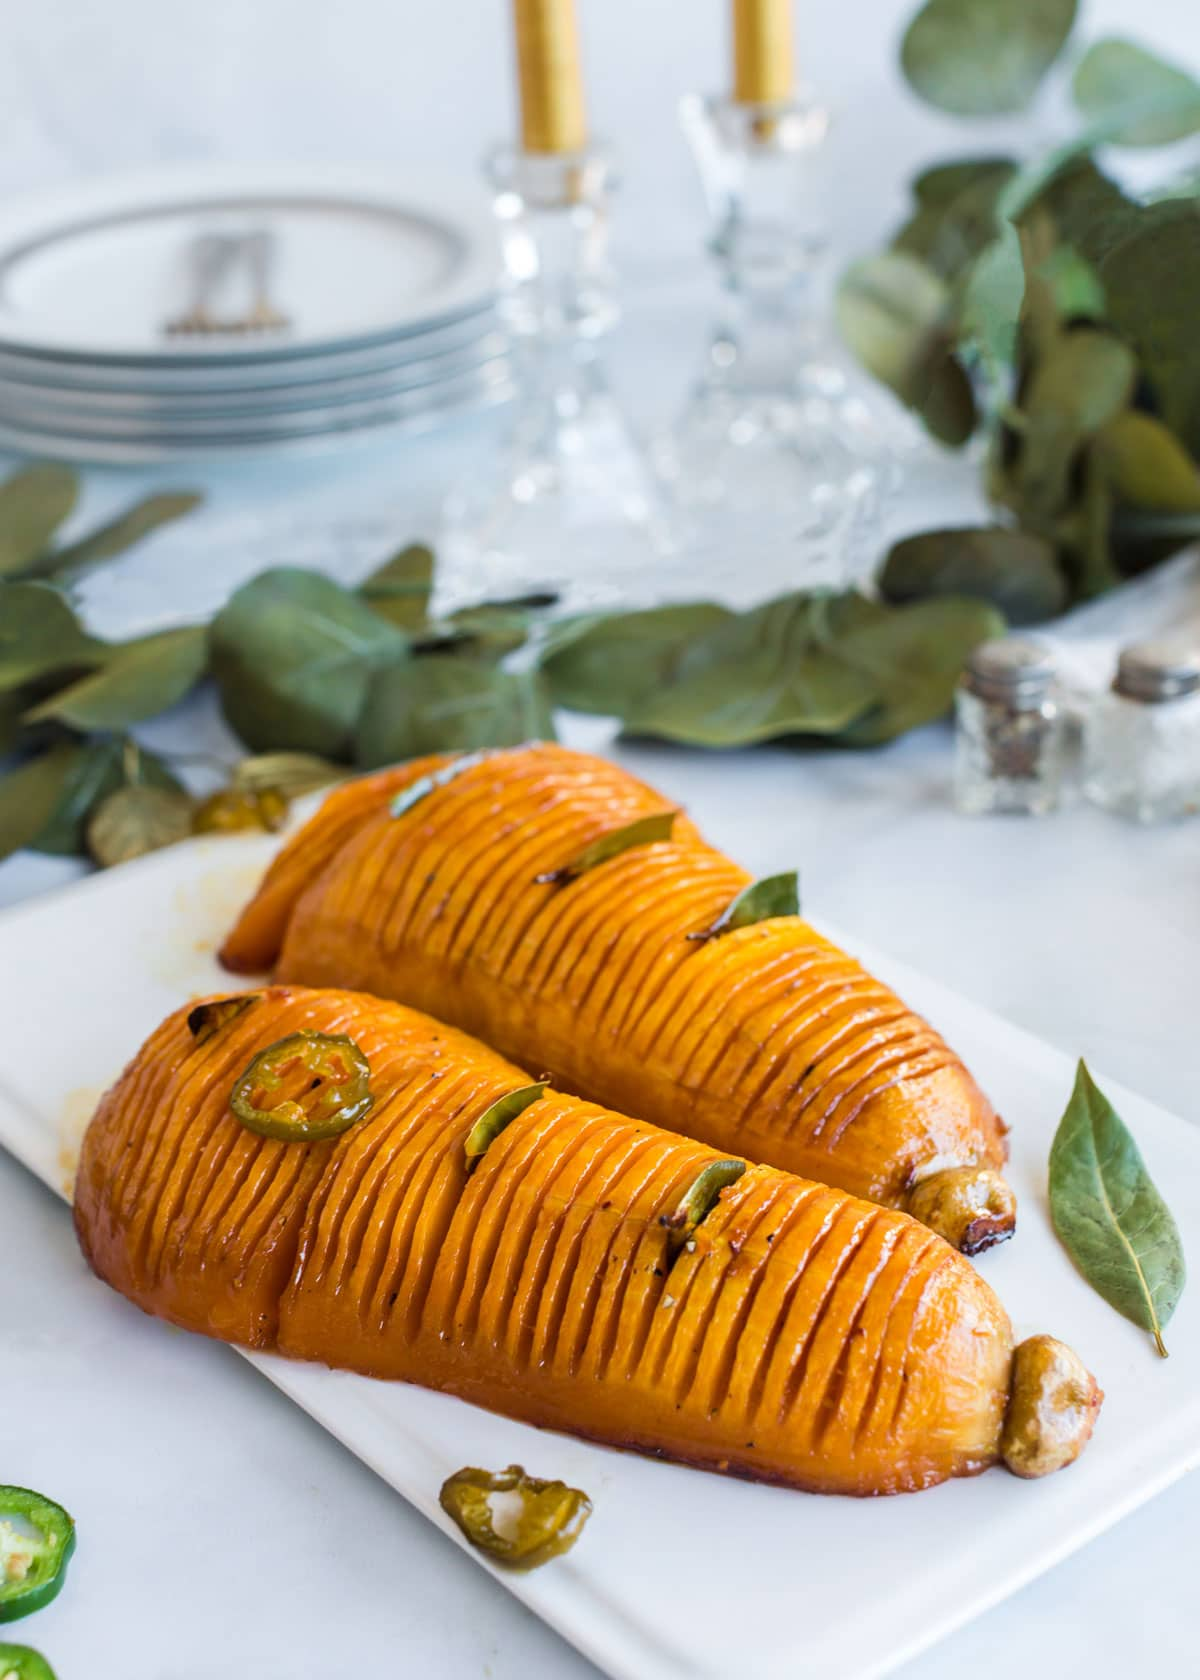 Two hasselback butternut squash on a serving plate